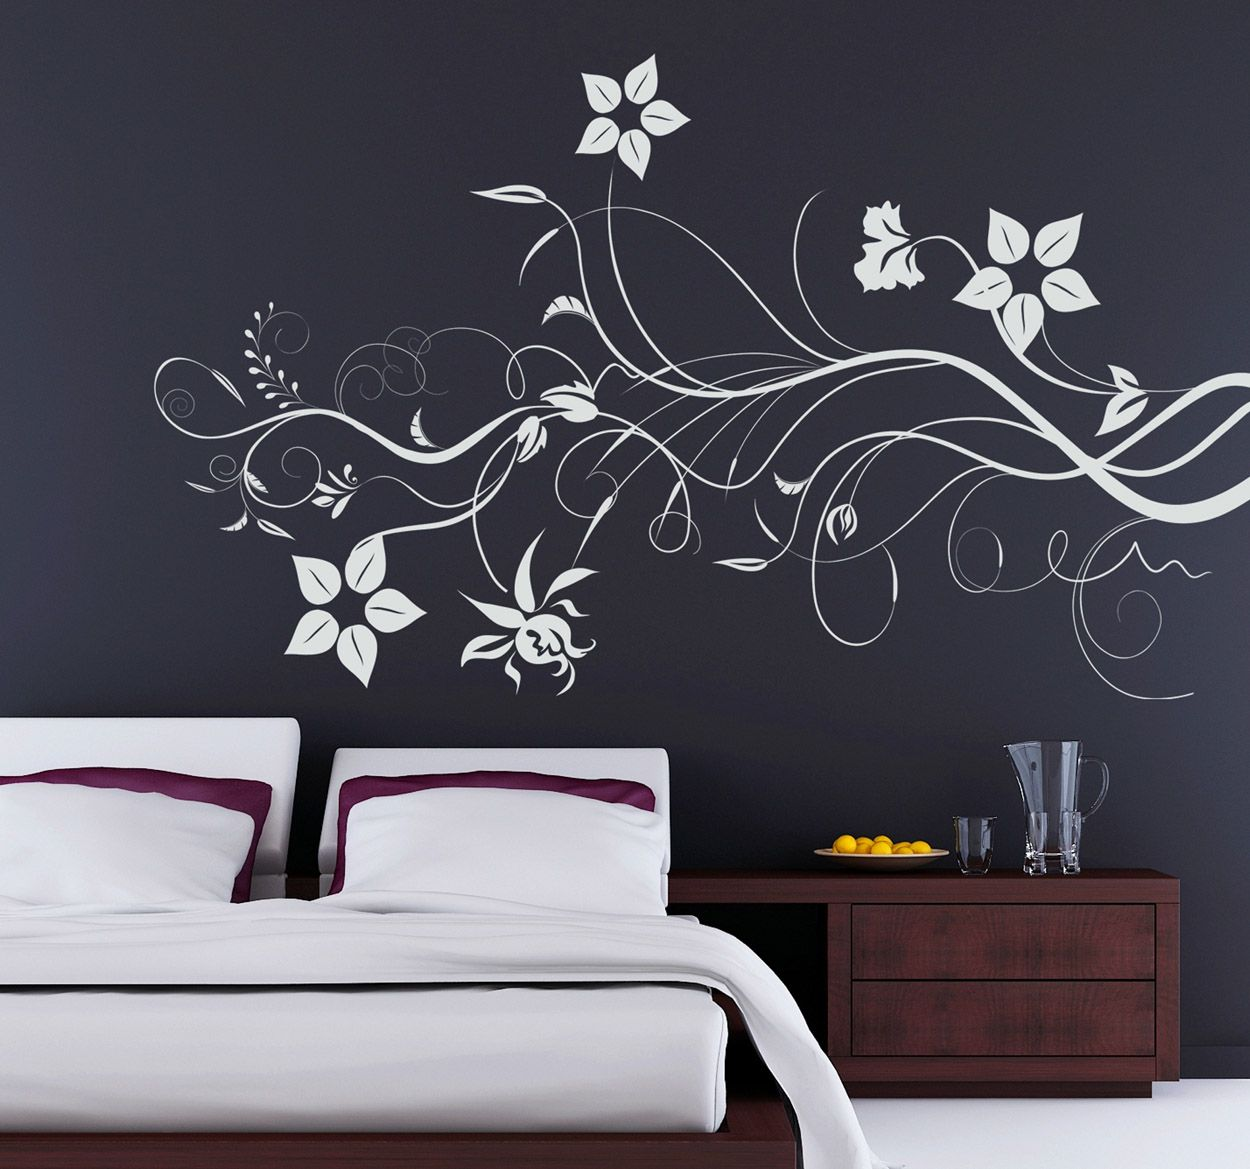 Elegant And Classy Floral Design To Decorate Your Home Ideal For  ~ Aplicaciã³n Para Pintar Paredes